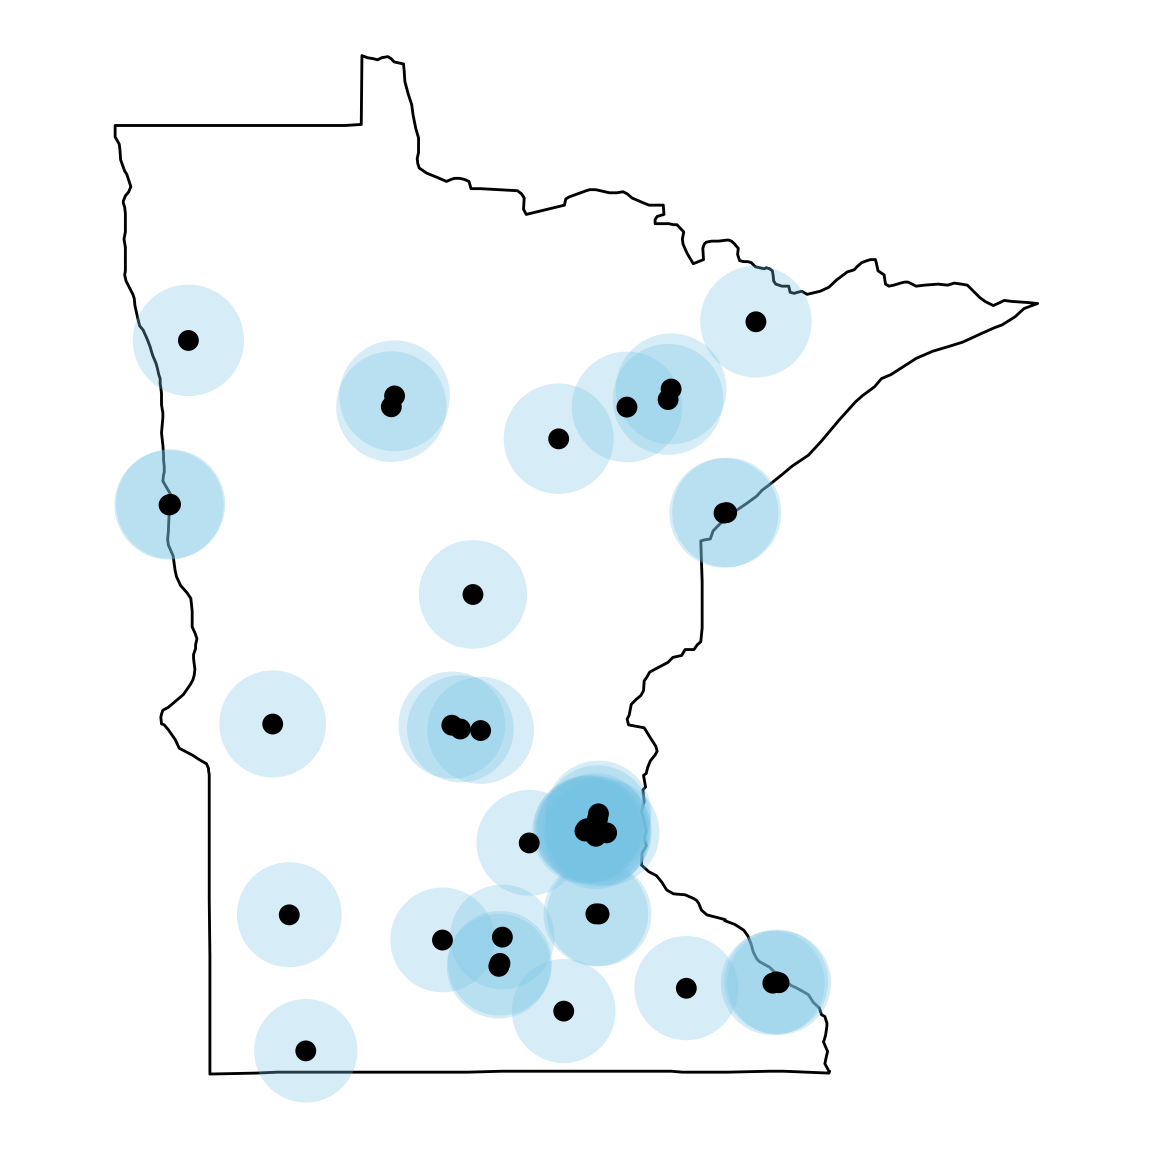 Locations of the 44 Minnesota colleges and universities c.2018.